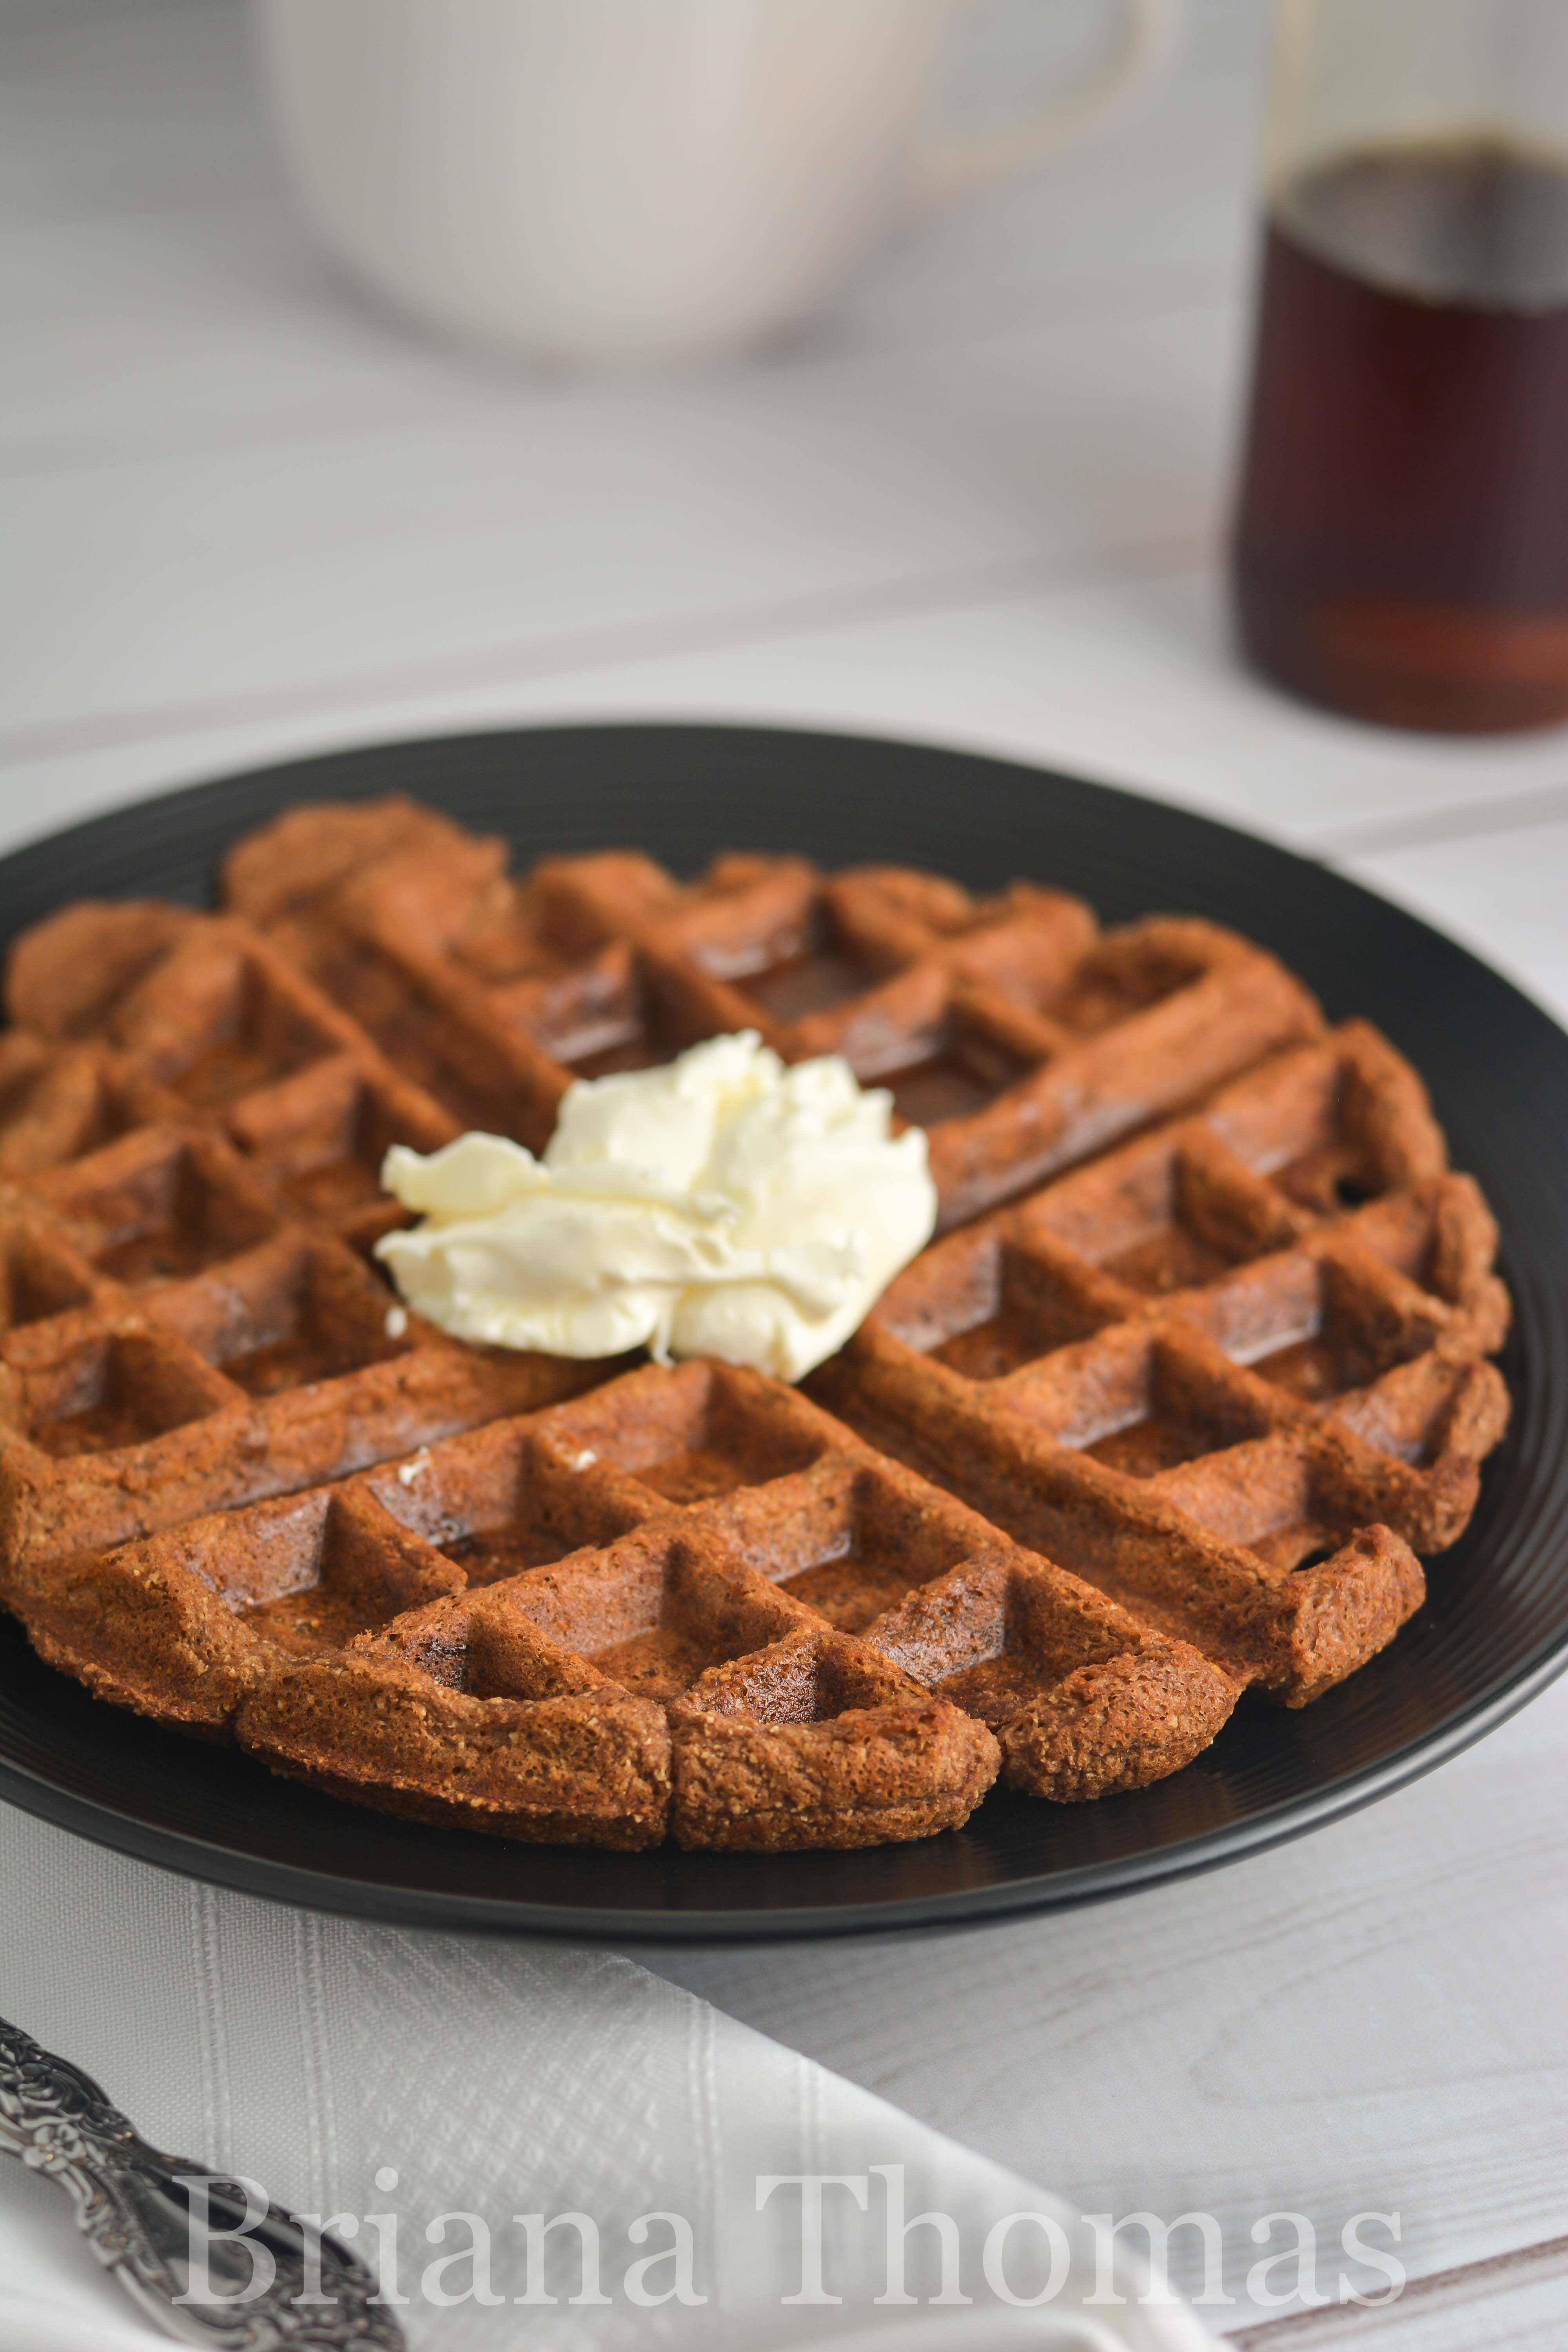 This Mocha Waffle is another weapon in my Fuel Pull arsenal. S, E, and FP topping suggestions given. THM:FP, low carb, low fat, sugar free, gluten/nut free